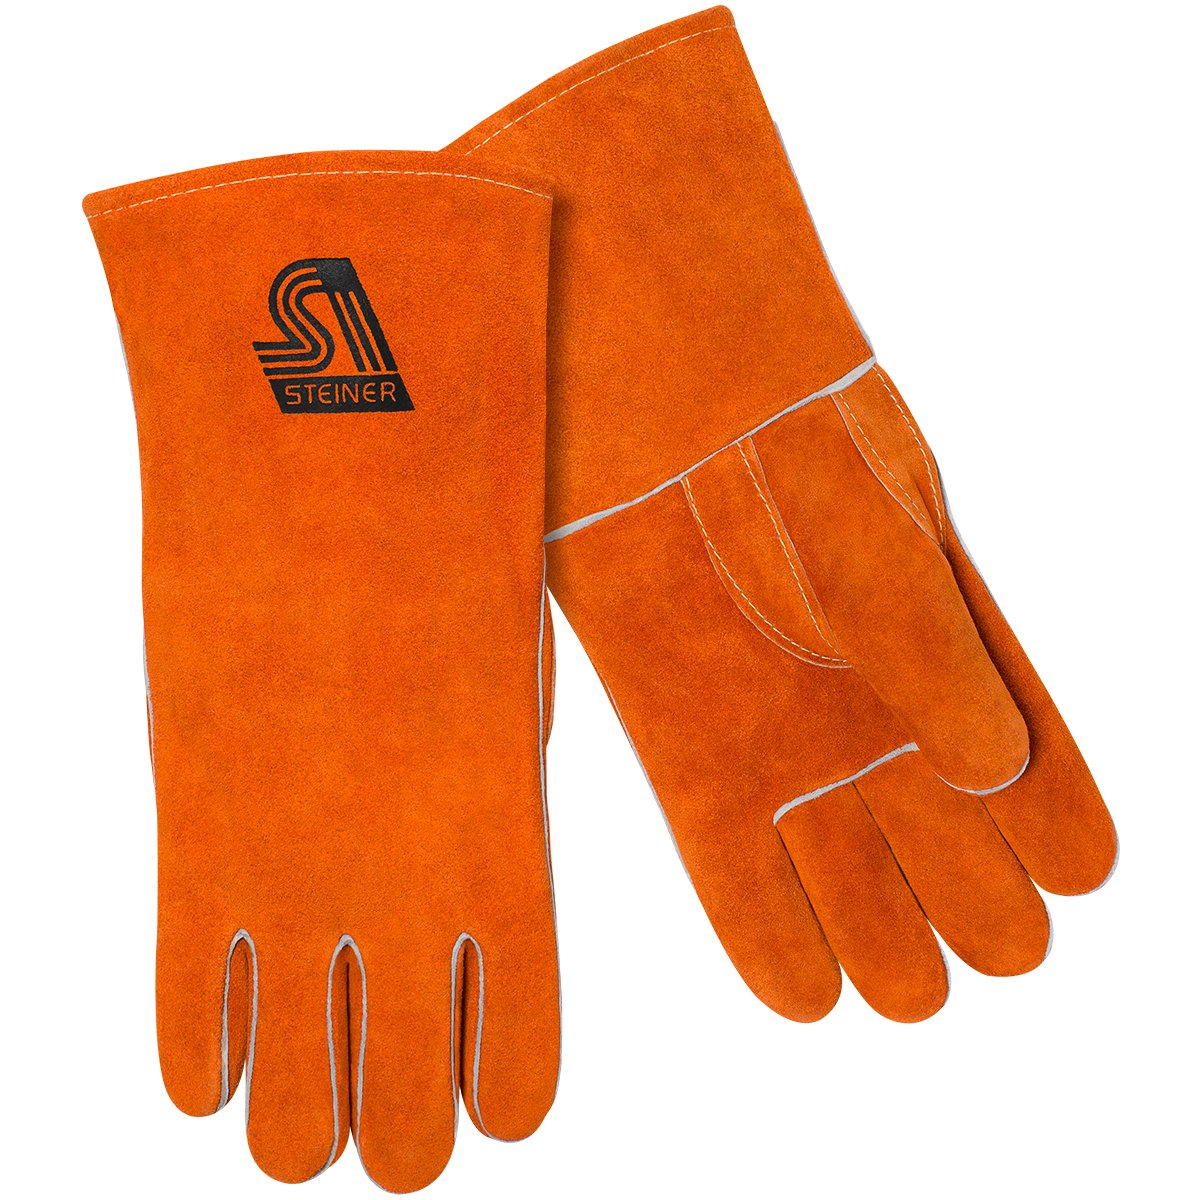 Steiner 2110Z-X Cotton Lined Straight Thumb Shoulder Split Cowhide Stick Welding Gloves, 14'' Long/X-Large (12-Pack)